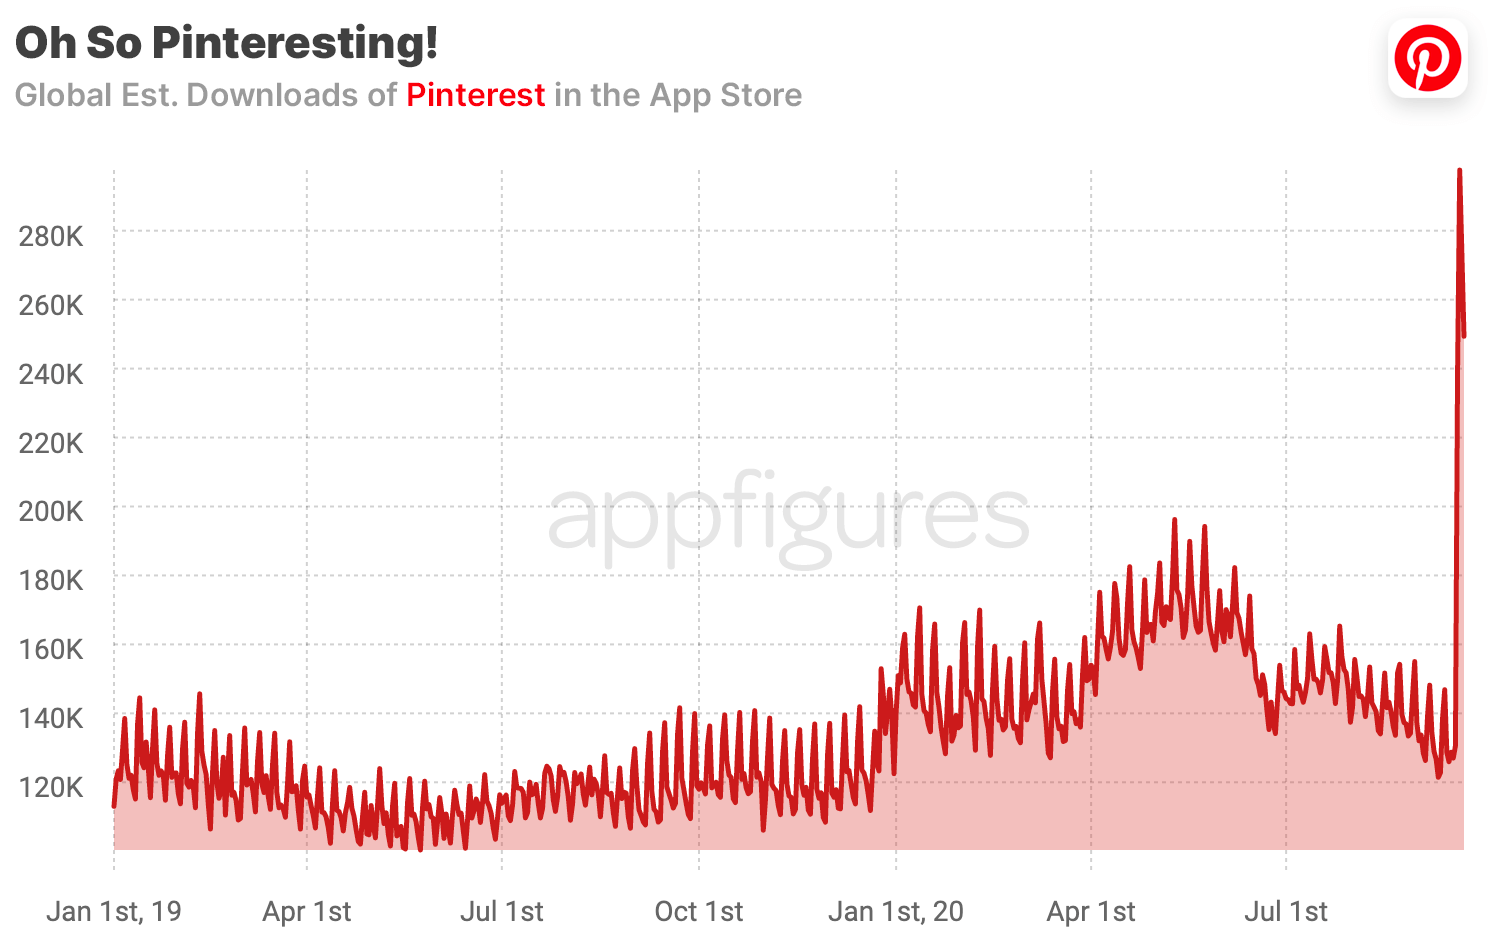 Pinterest downloads in the App Store